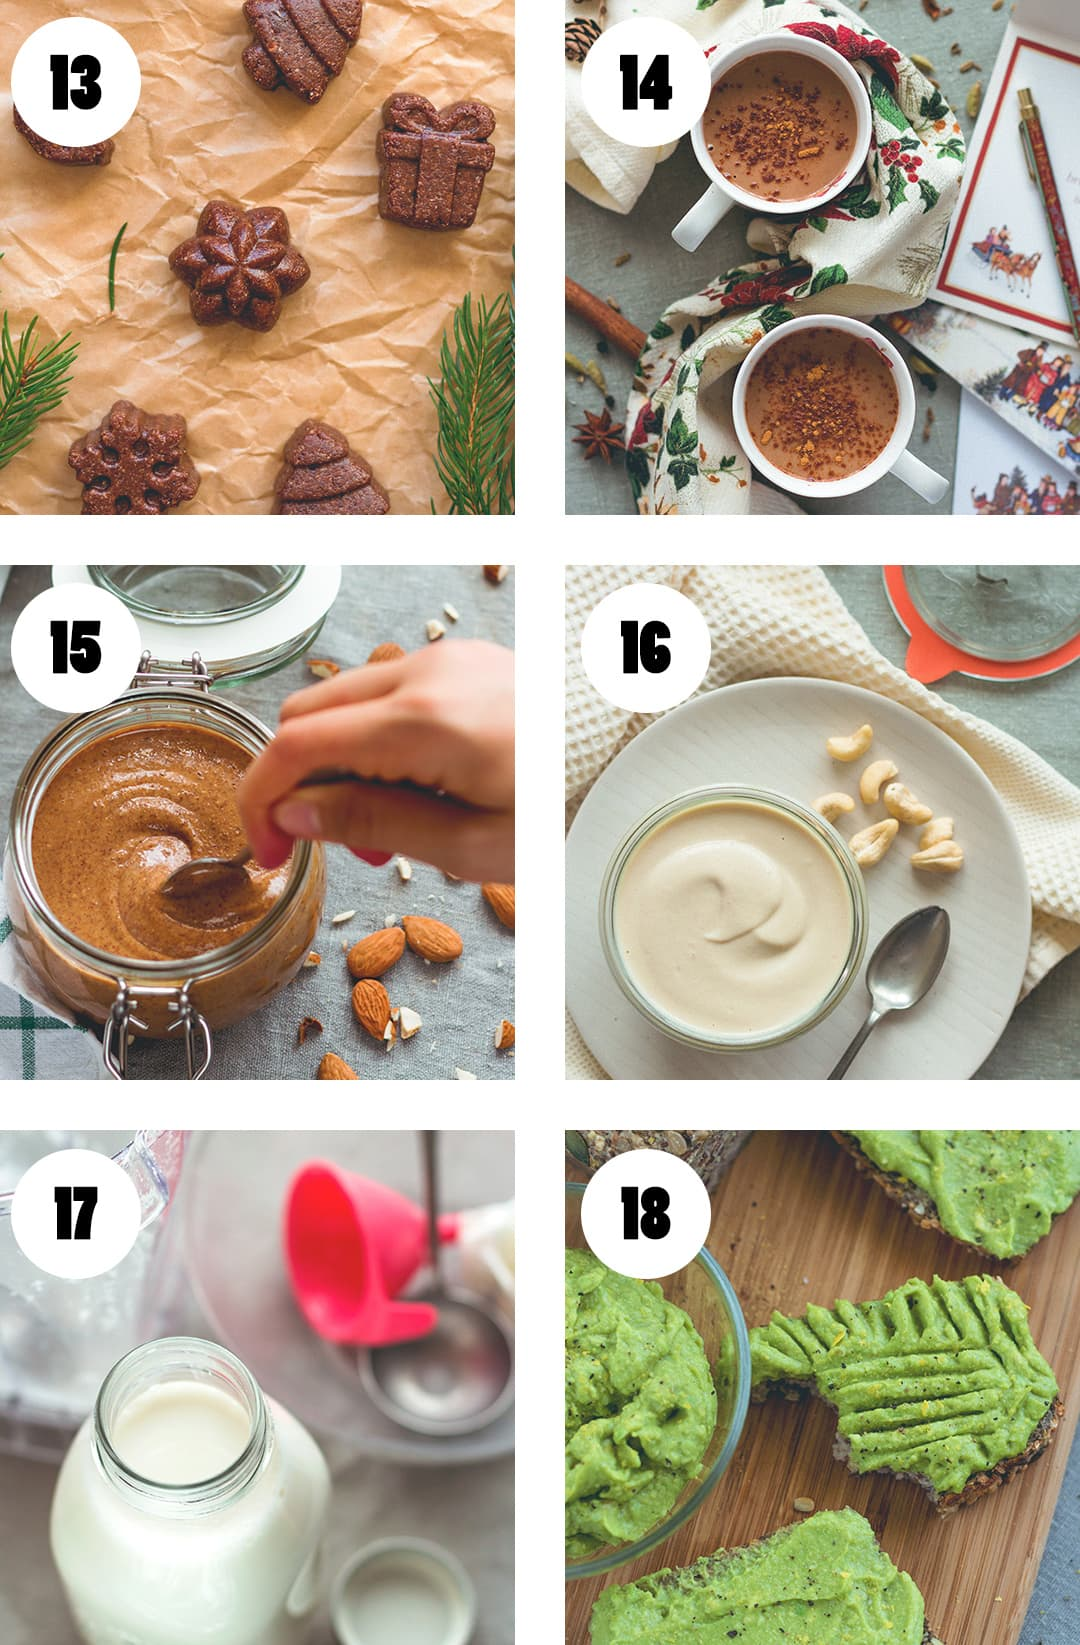 The Best Recipes of 2016 The Healthful Ideas - oatmeal, pancakes, hot chocolate, snacks, sweets, salads, pasta, spread, nut butter, almond milk, and more! You'll love everything! | thehealthfulideas.com